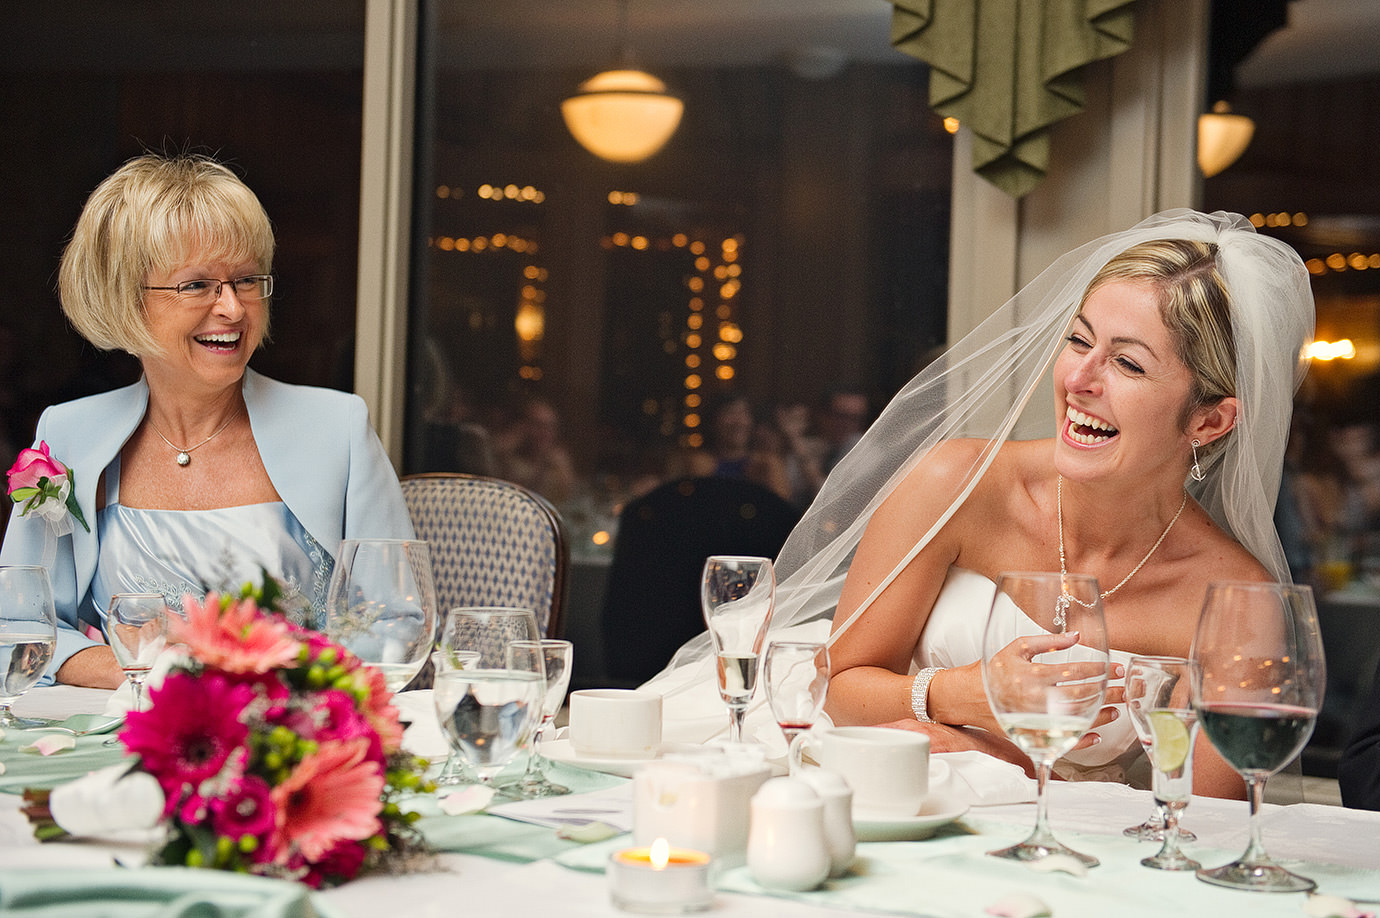 halifax_wedding_photographers_Jeff_Cooke_34